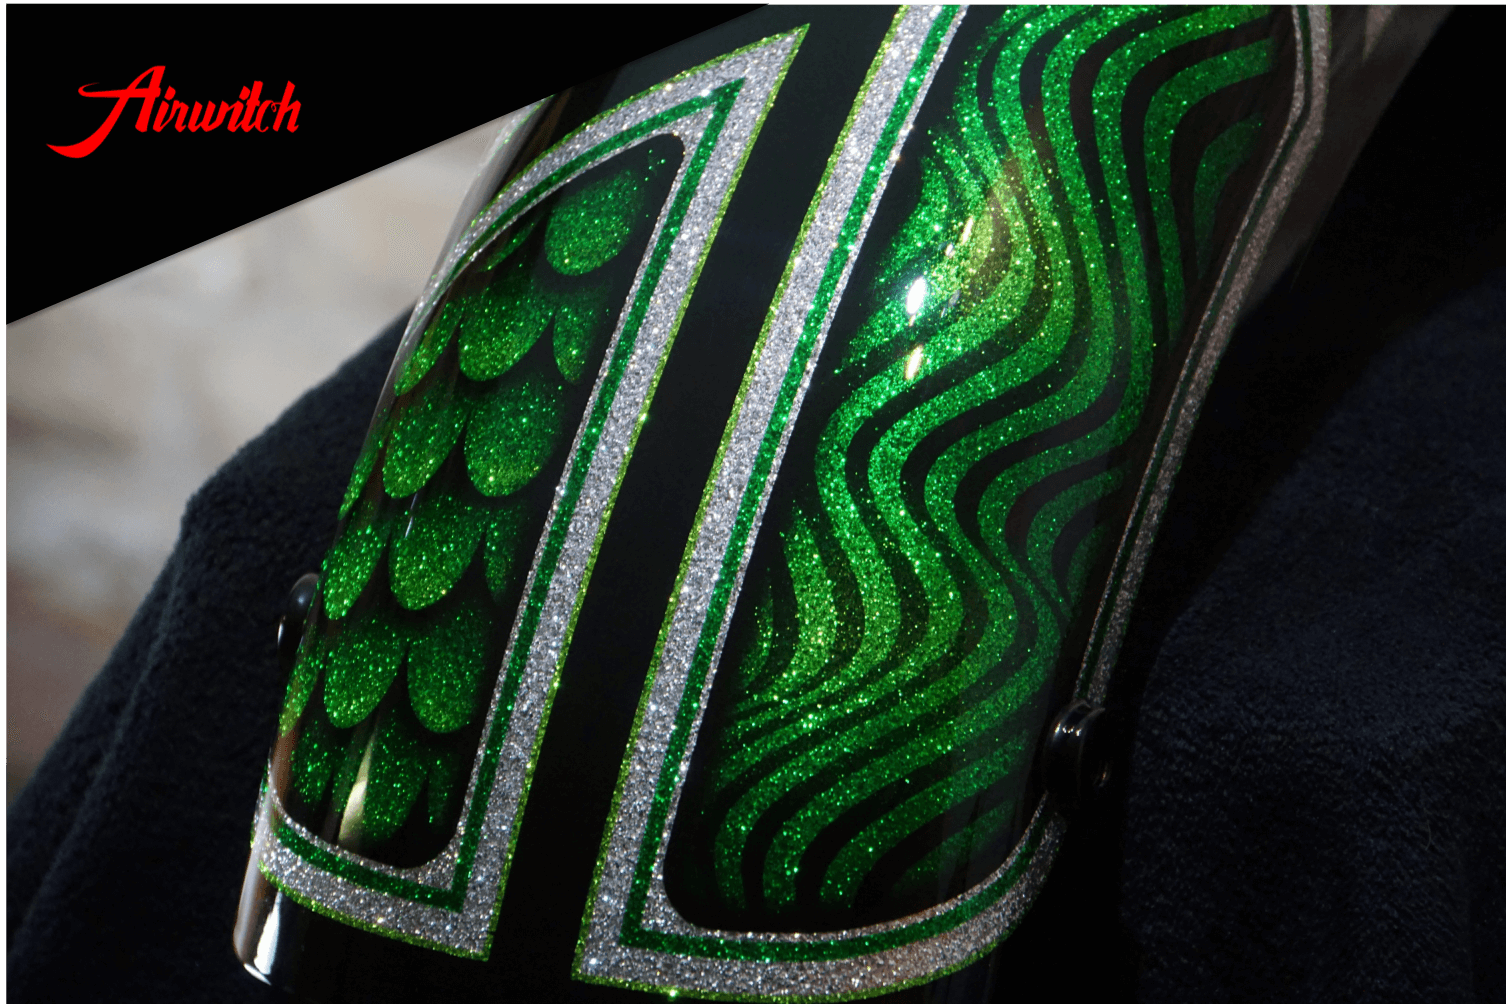 Custom Paint Harley-Davidson Shovelhead Metalflakes Lackierung Frisco Silver Green Airwitch